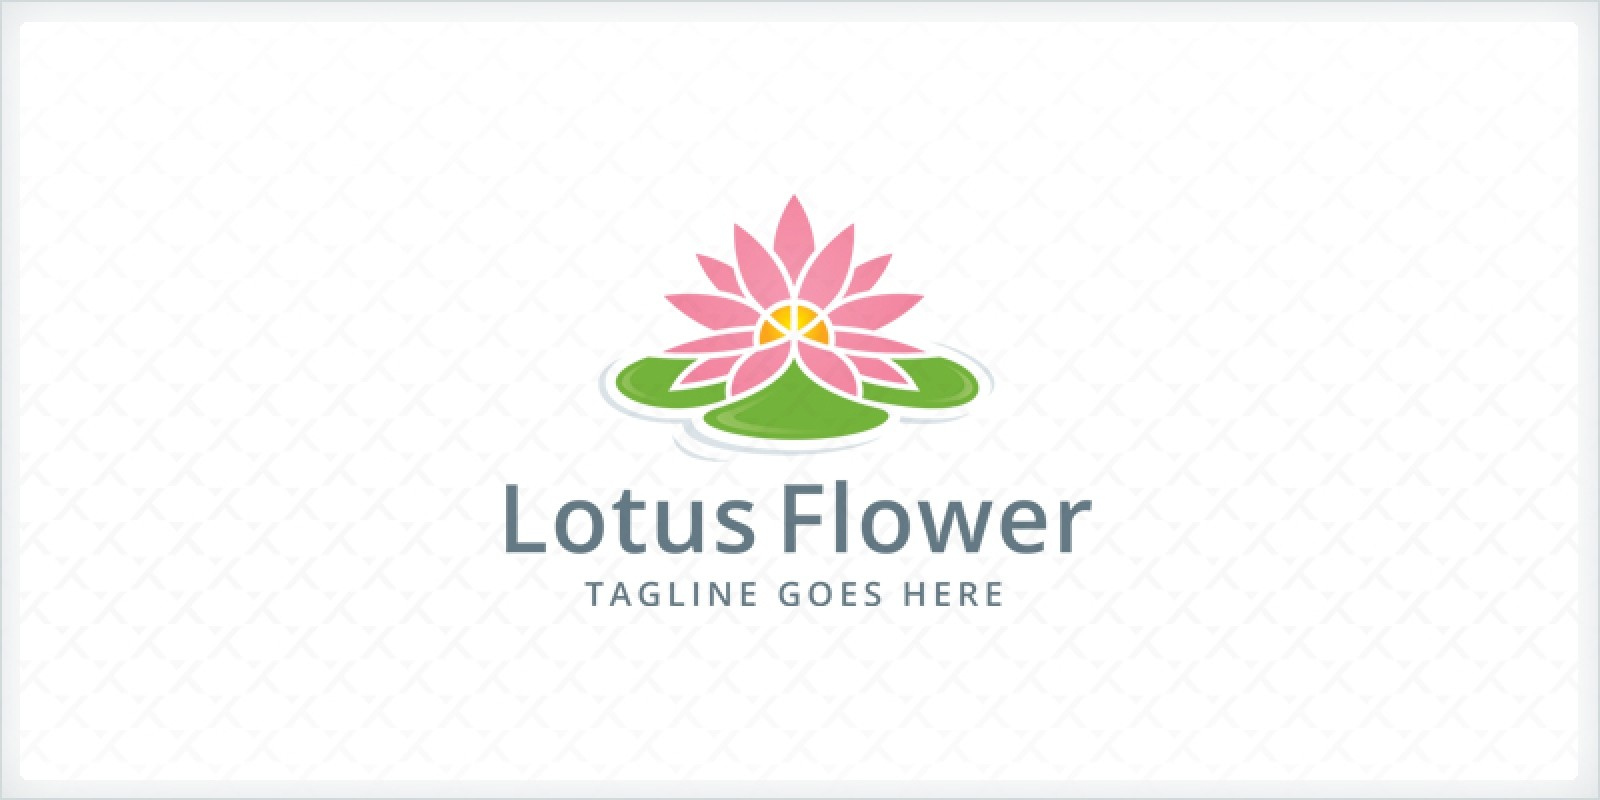 Lotus flower logo template codester lotus flower logo template izmirmasajfo